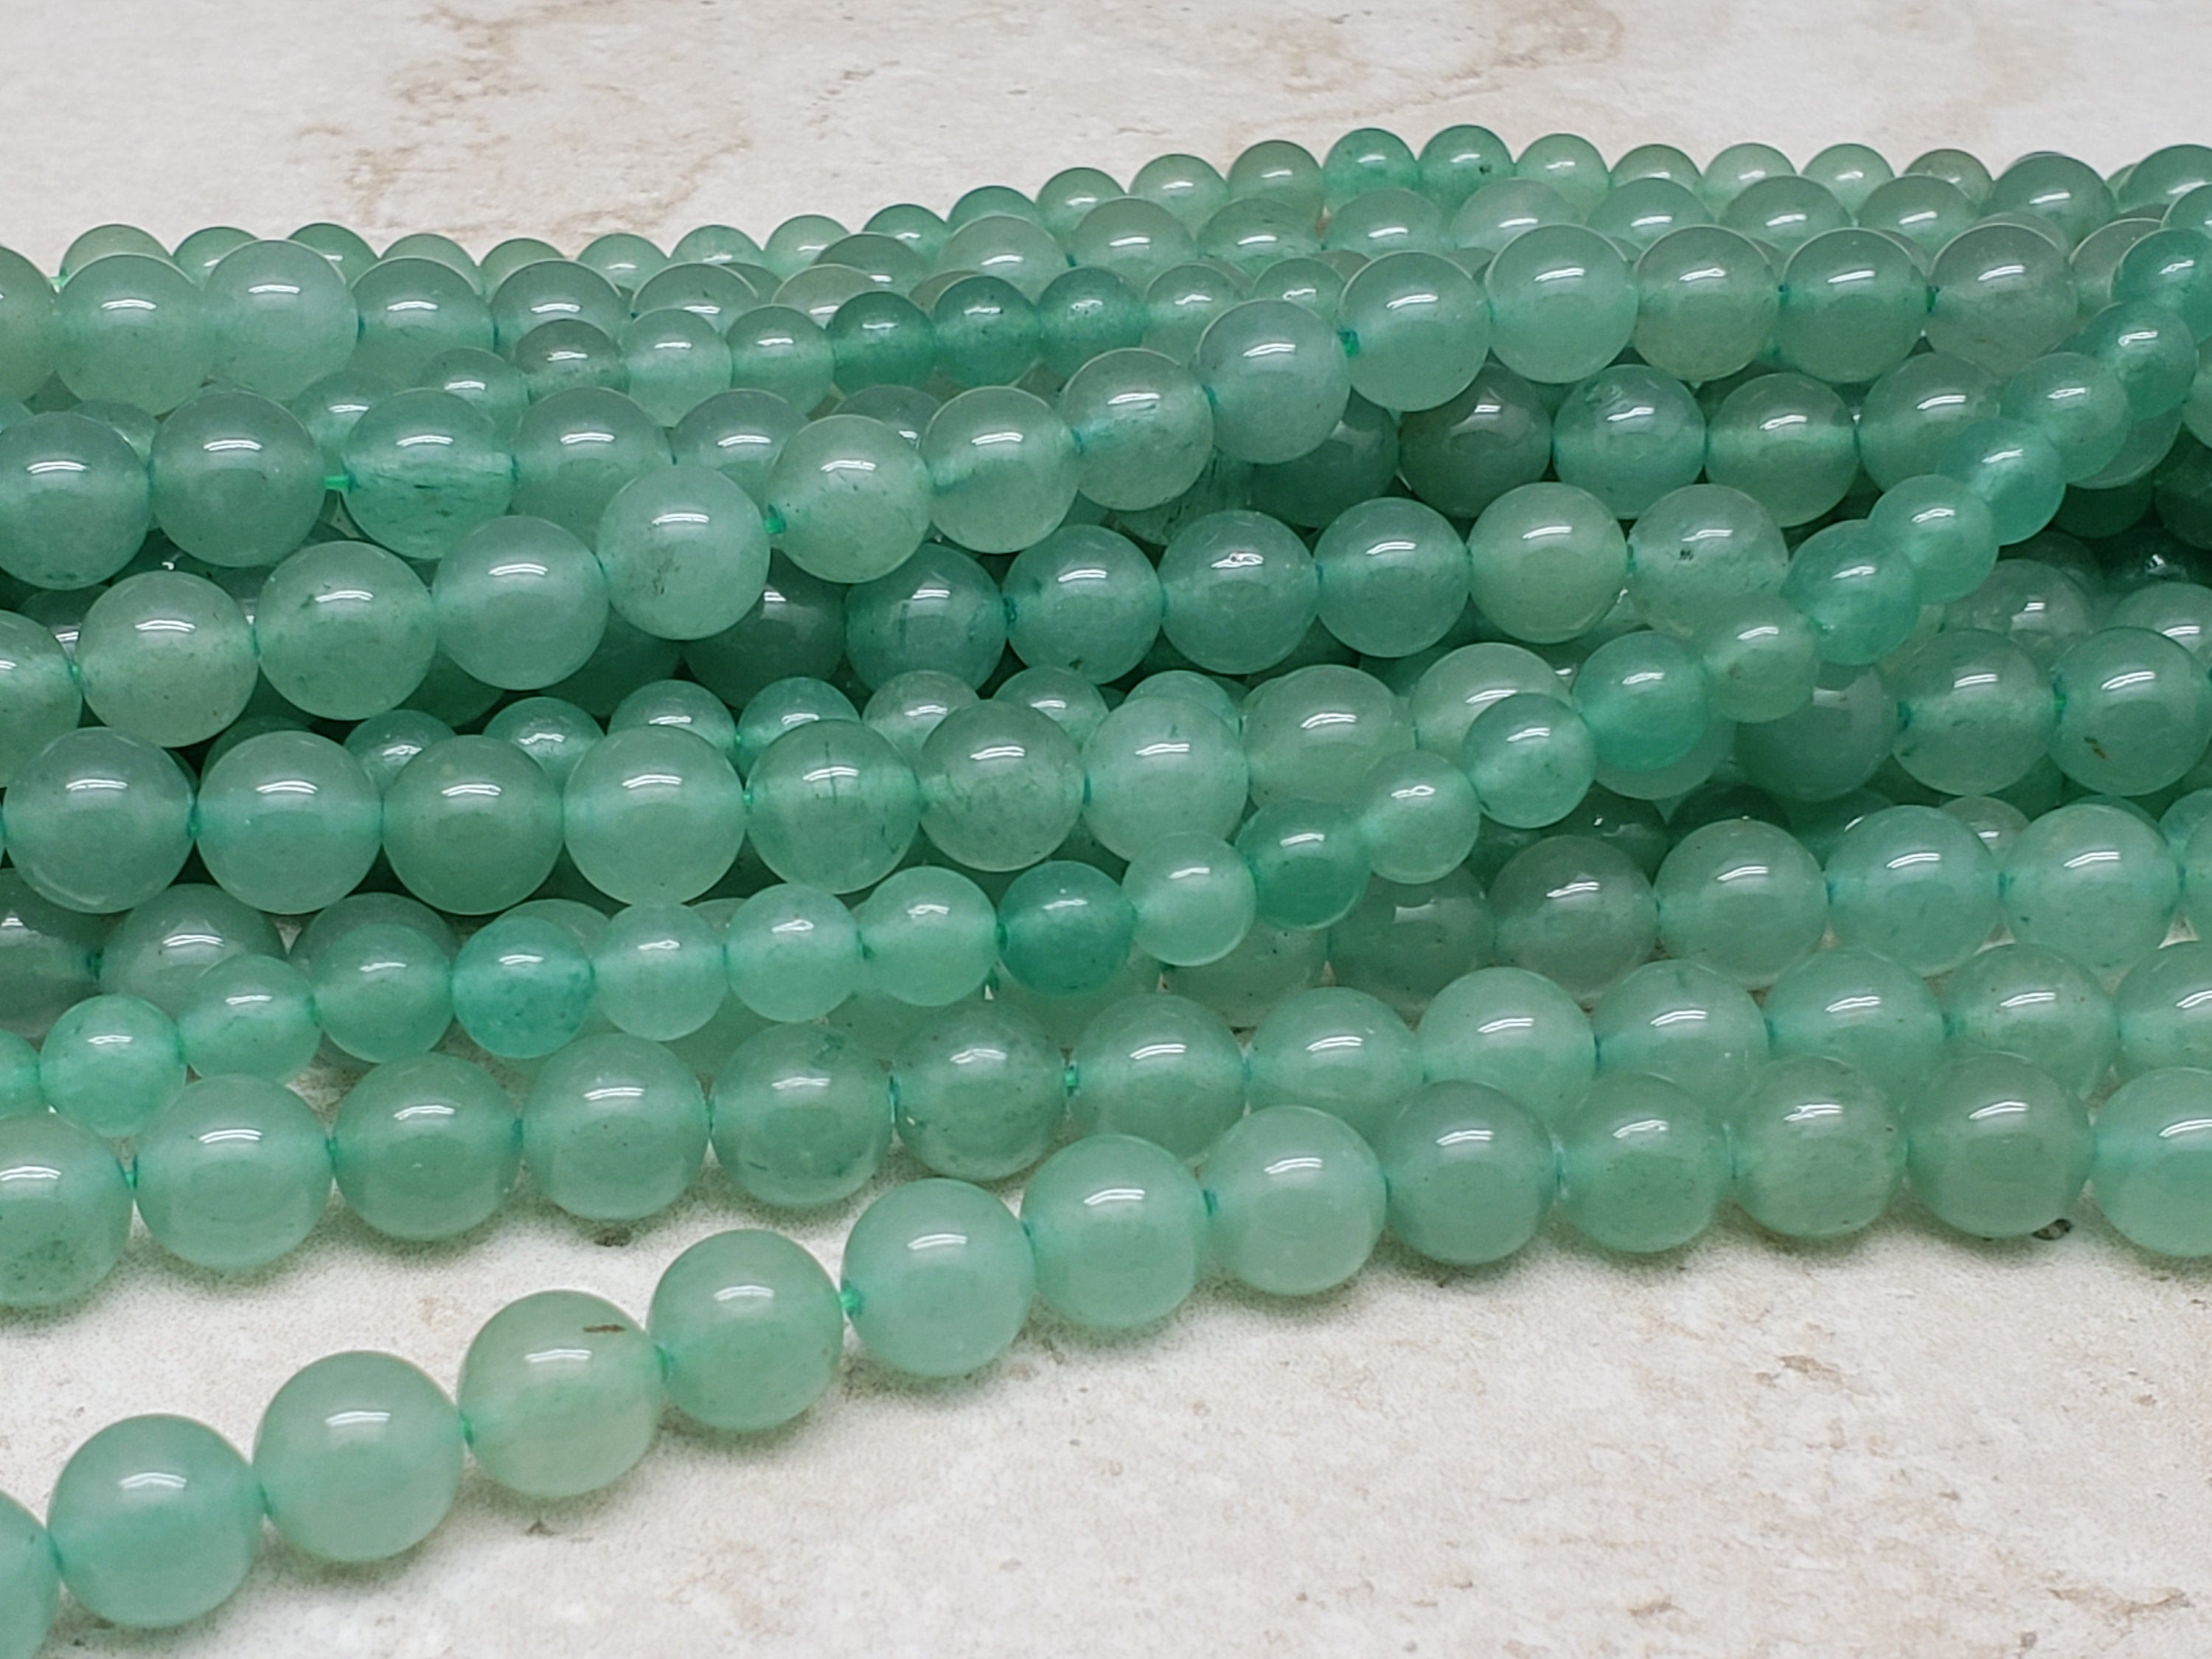 4mm or 6mm or 8mm Green Aventurine Polished Round Beads, 15.5 inch